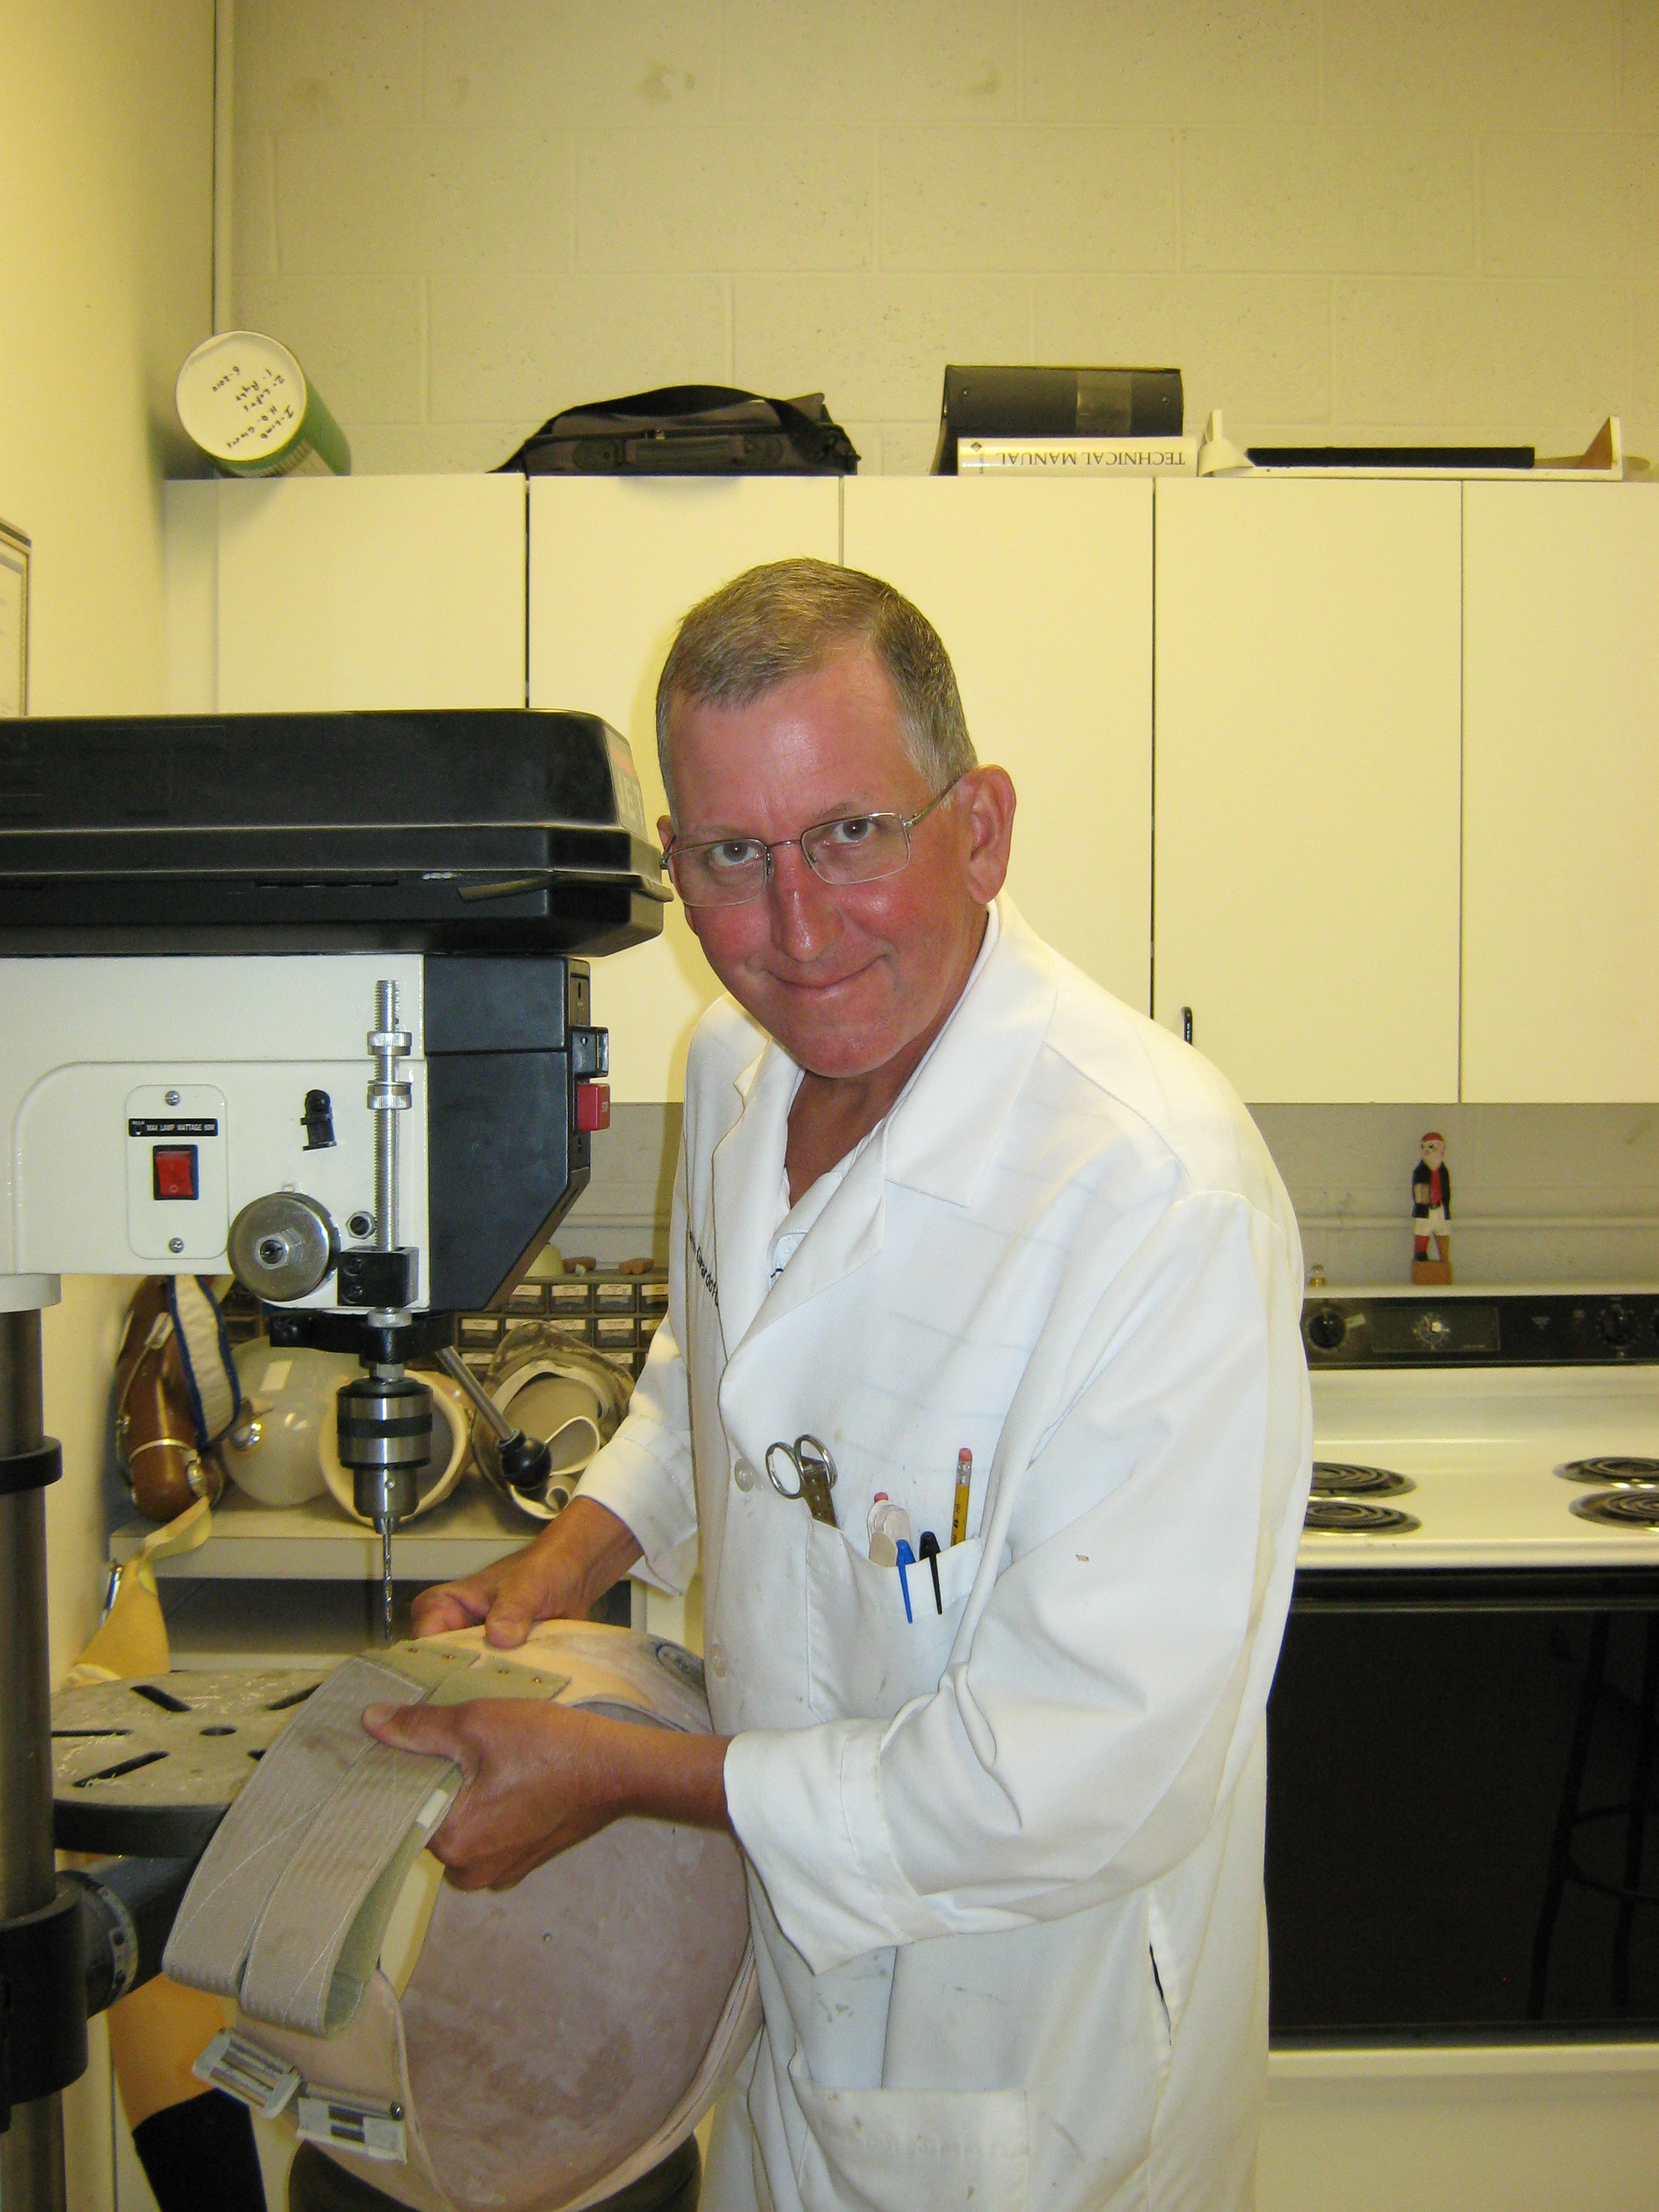 Keith Girardot, CP -   President  40 years in Prosthetics  Specializing in Upper and Lower Extremity Prosthetics